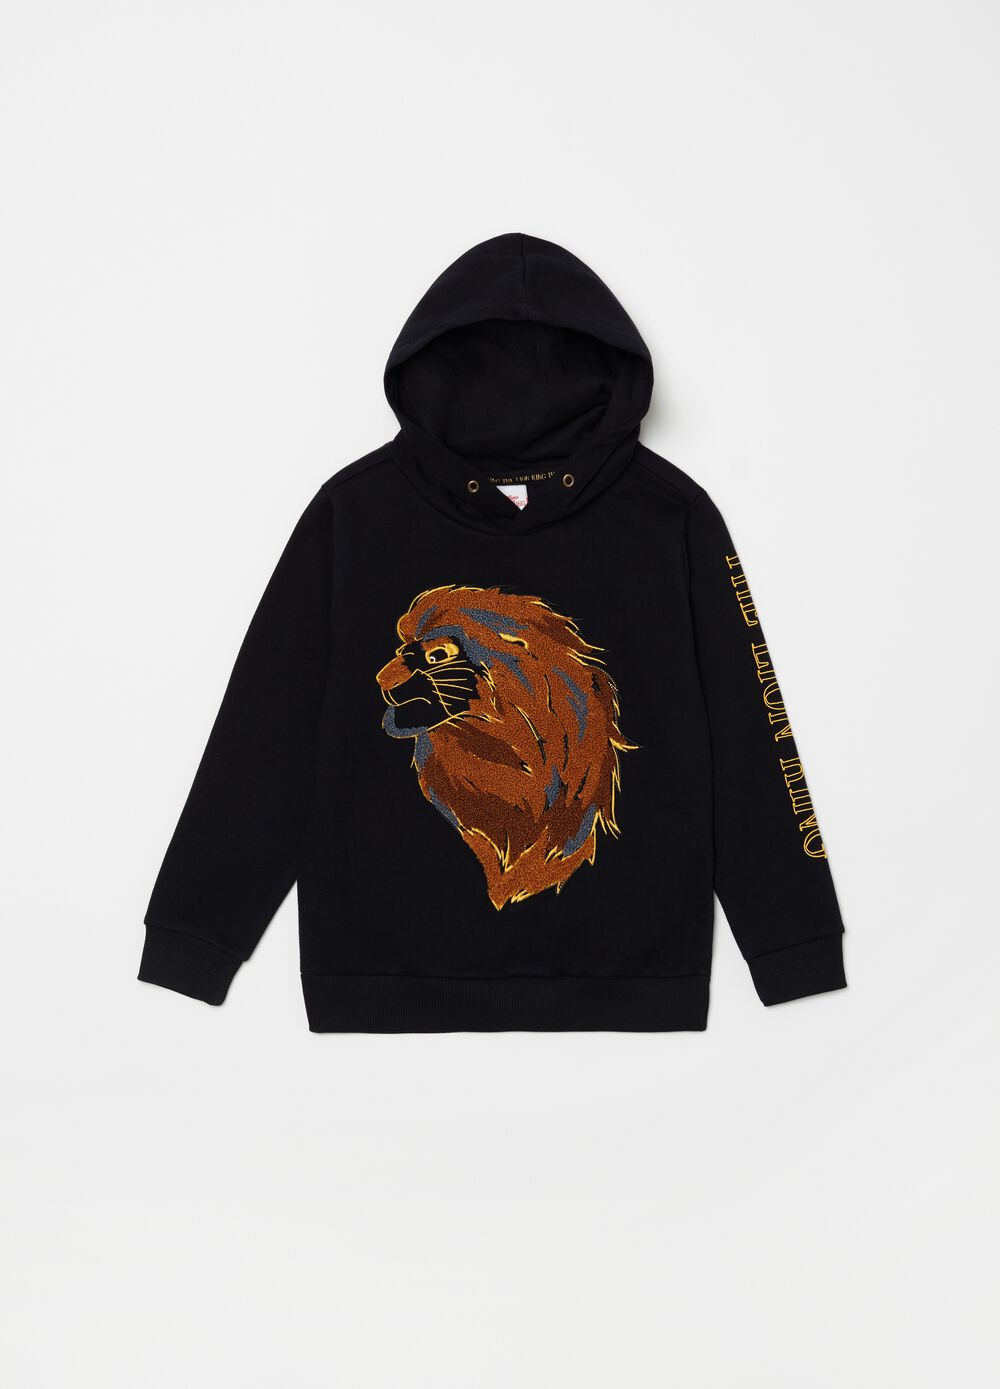 Disney The Lion King sweatshirt with embroidery and print